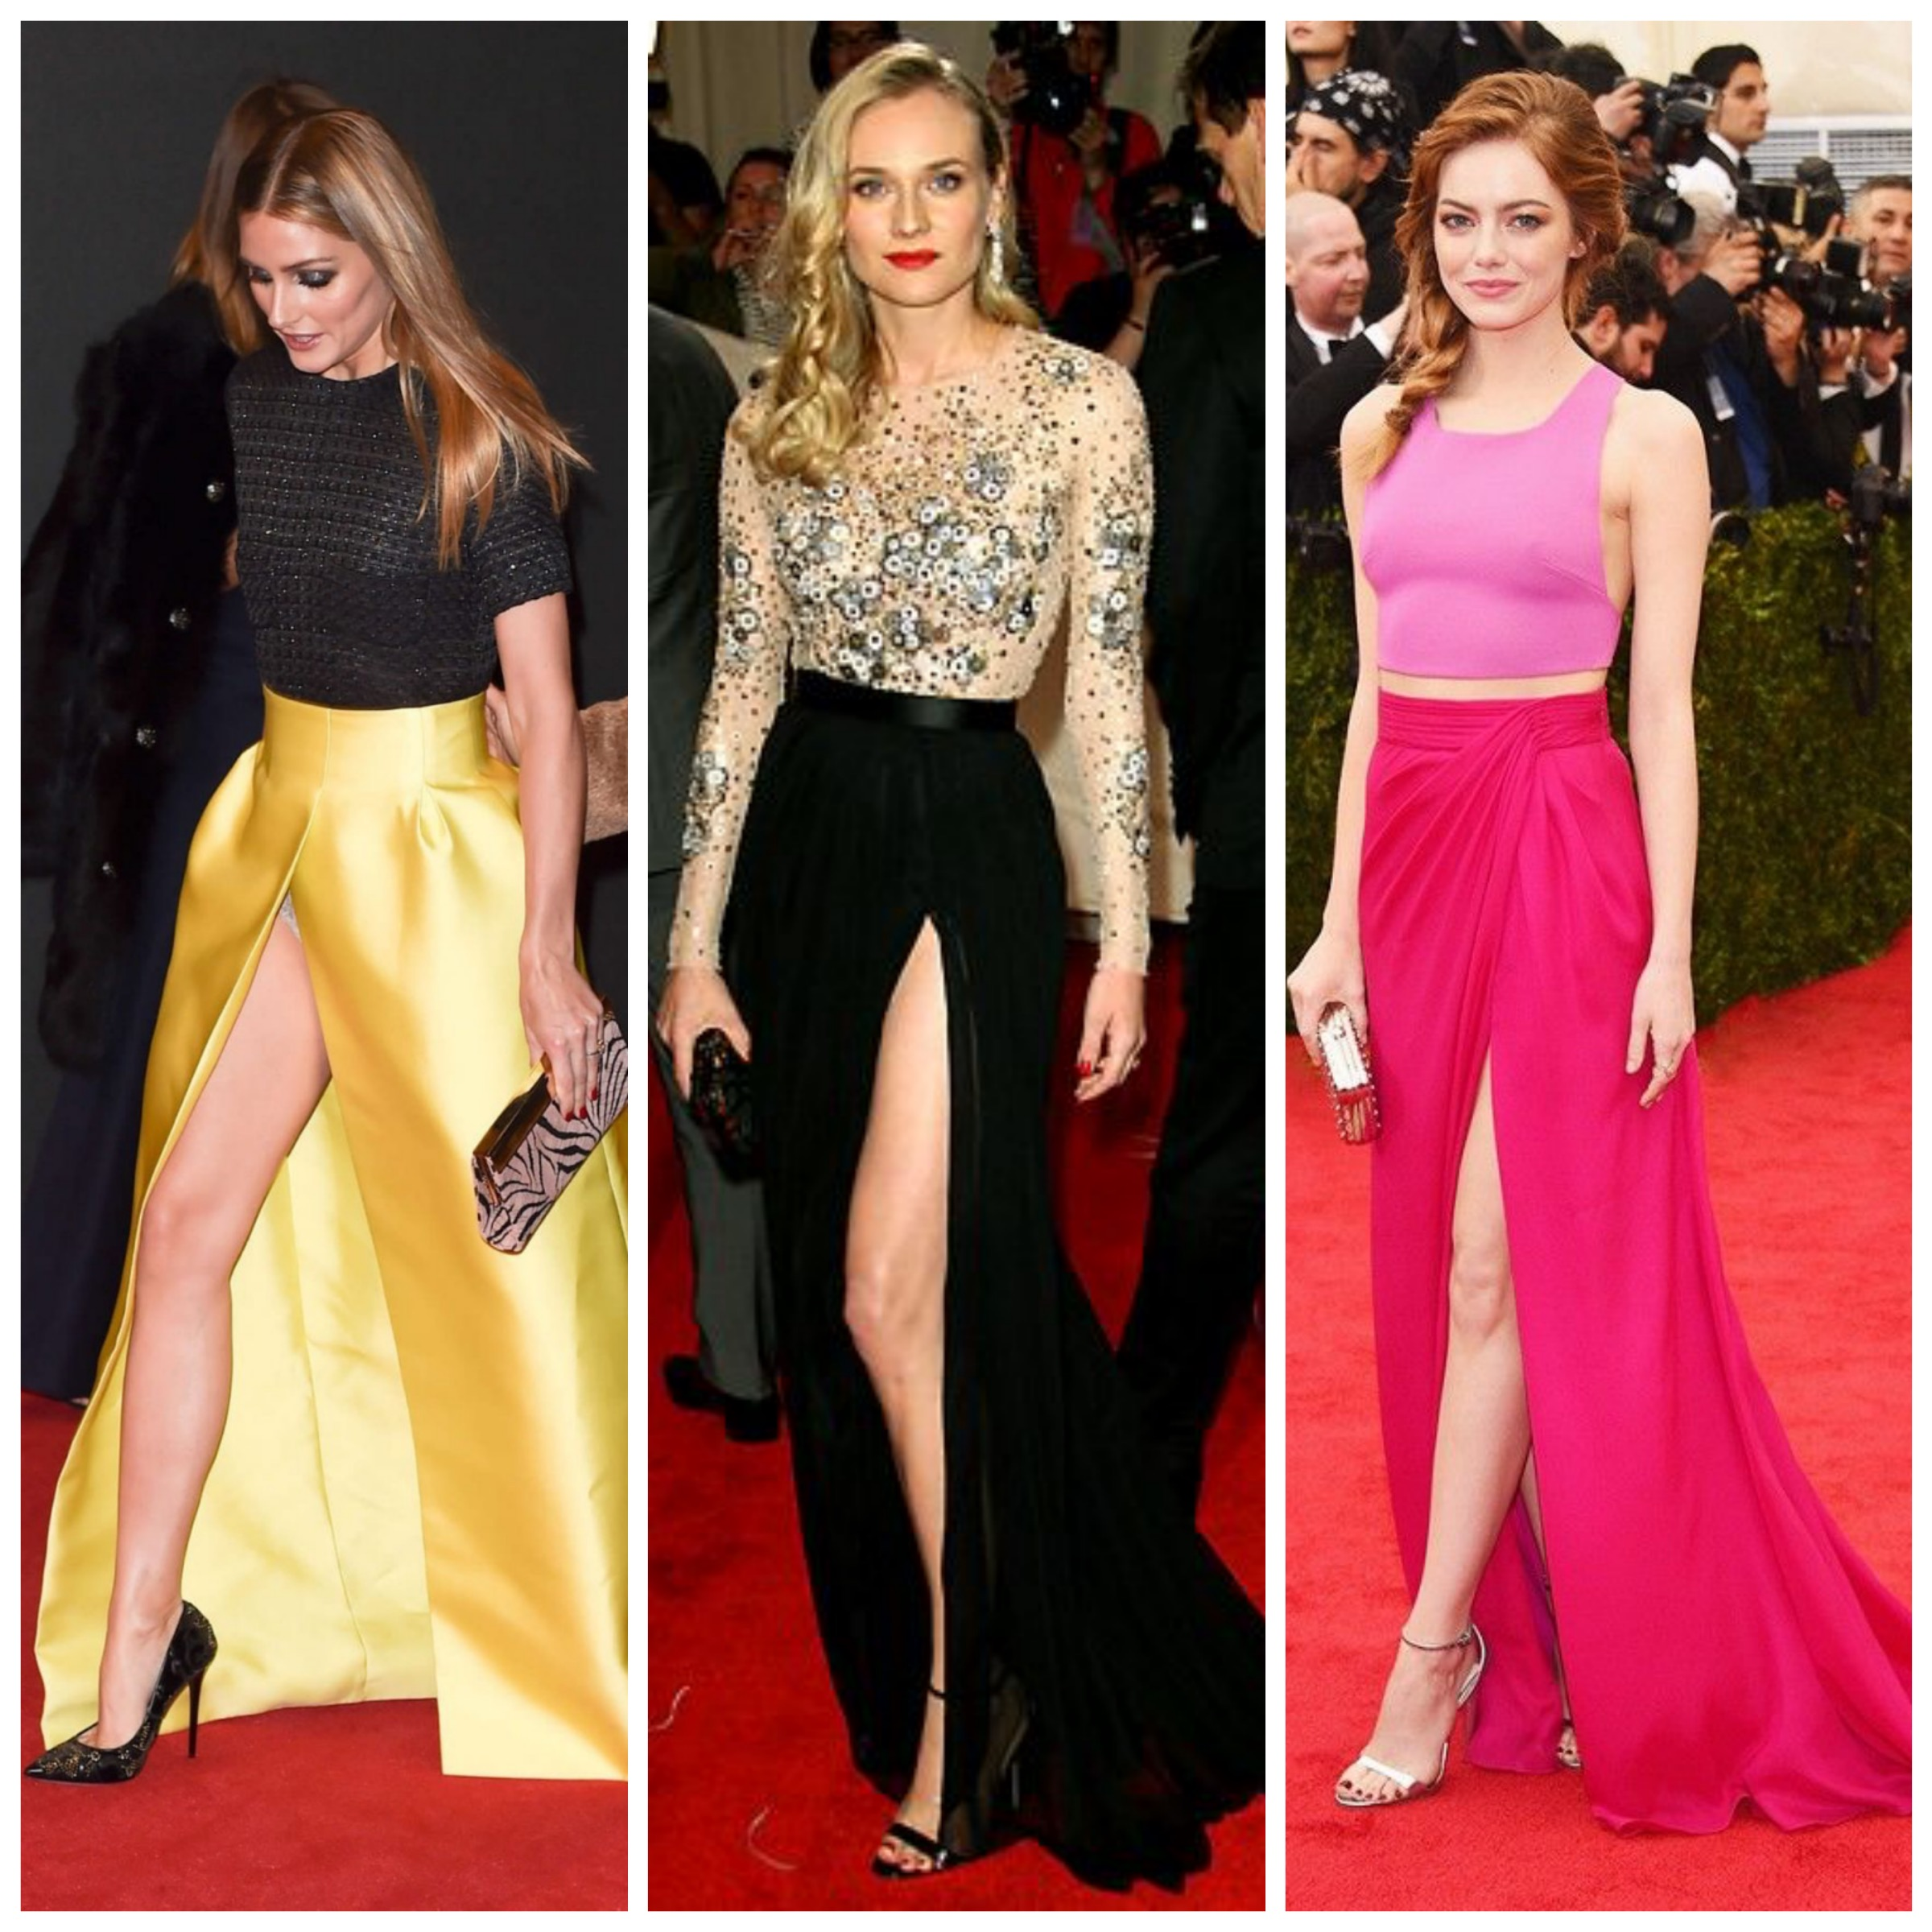 Maxi Skirts on Red Carpet